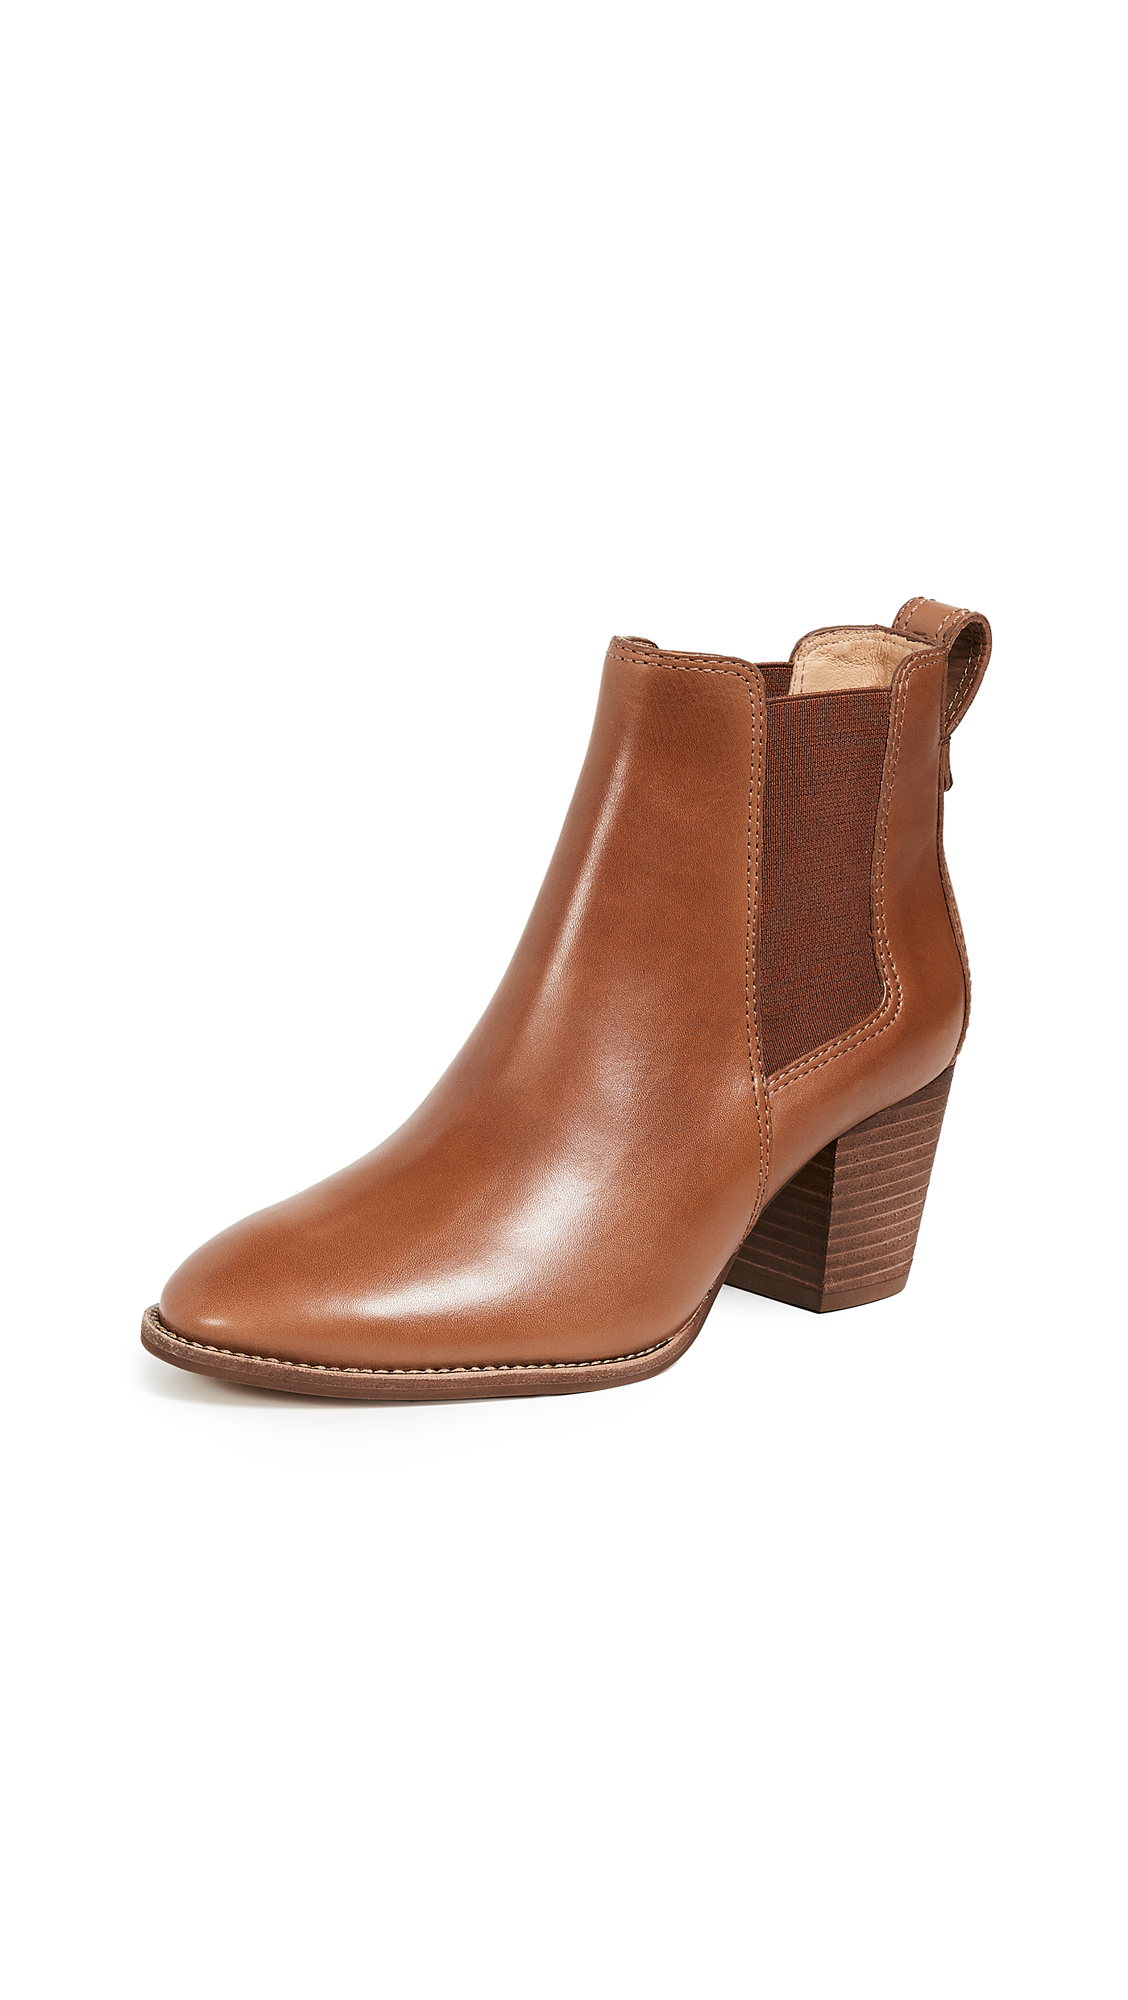 Madewell Heeled Chelsea Boots - English Saddle